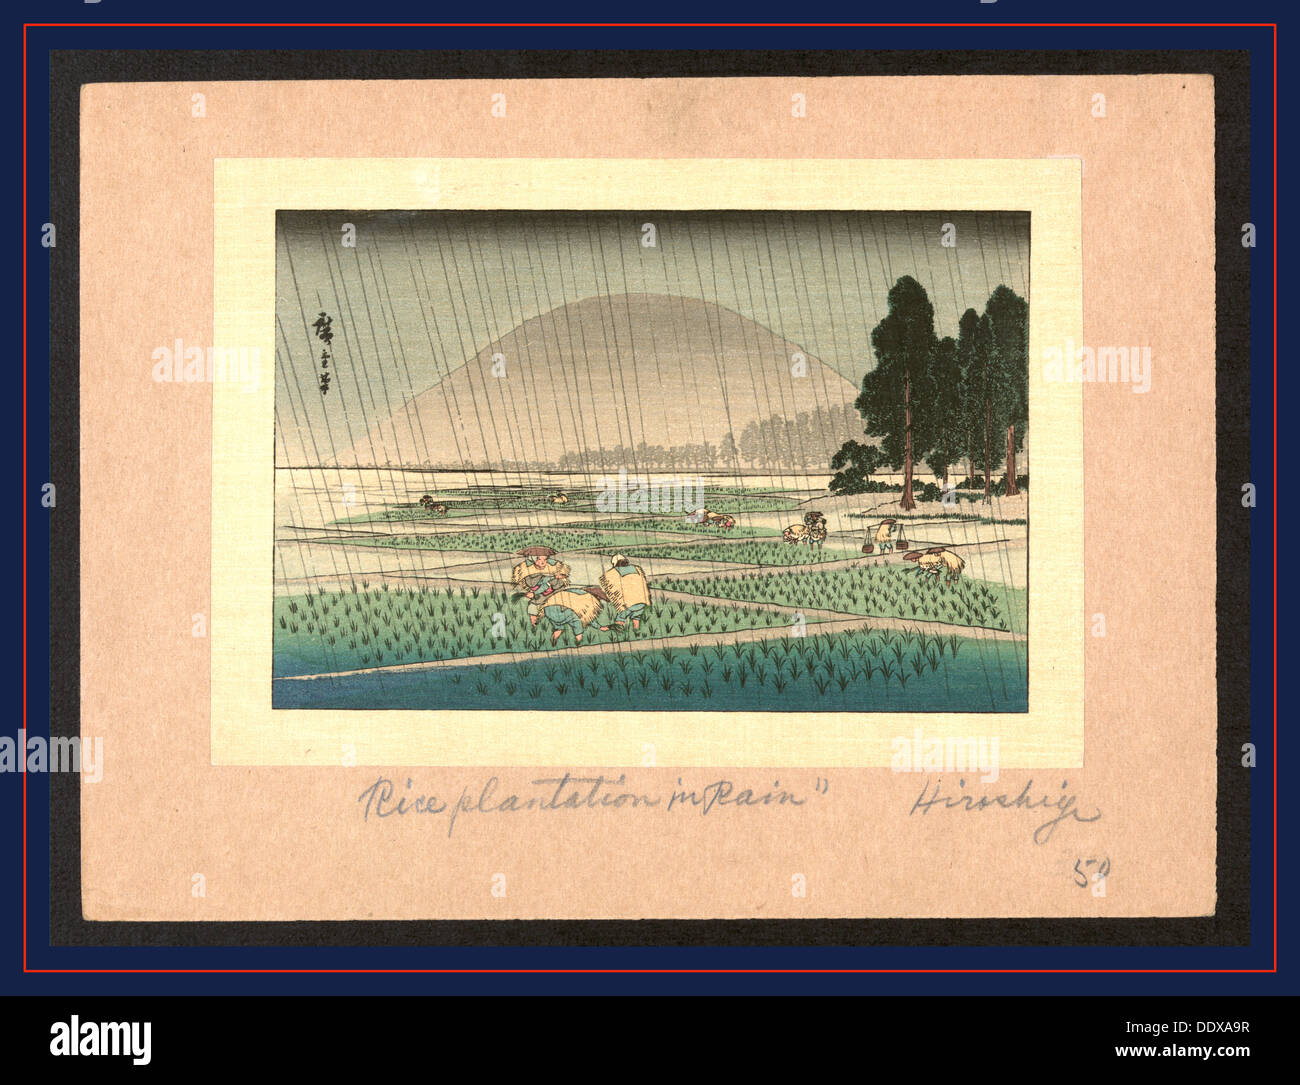 [Fukeiga], [Rice planting in rain]. [between 1900 and 1940, from an earlier print], 1 print : woodcut, color., Print shows - Stock Image